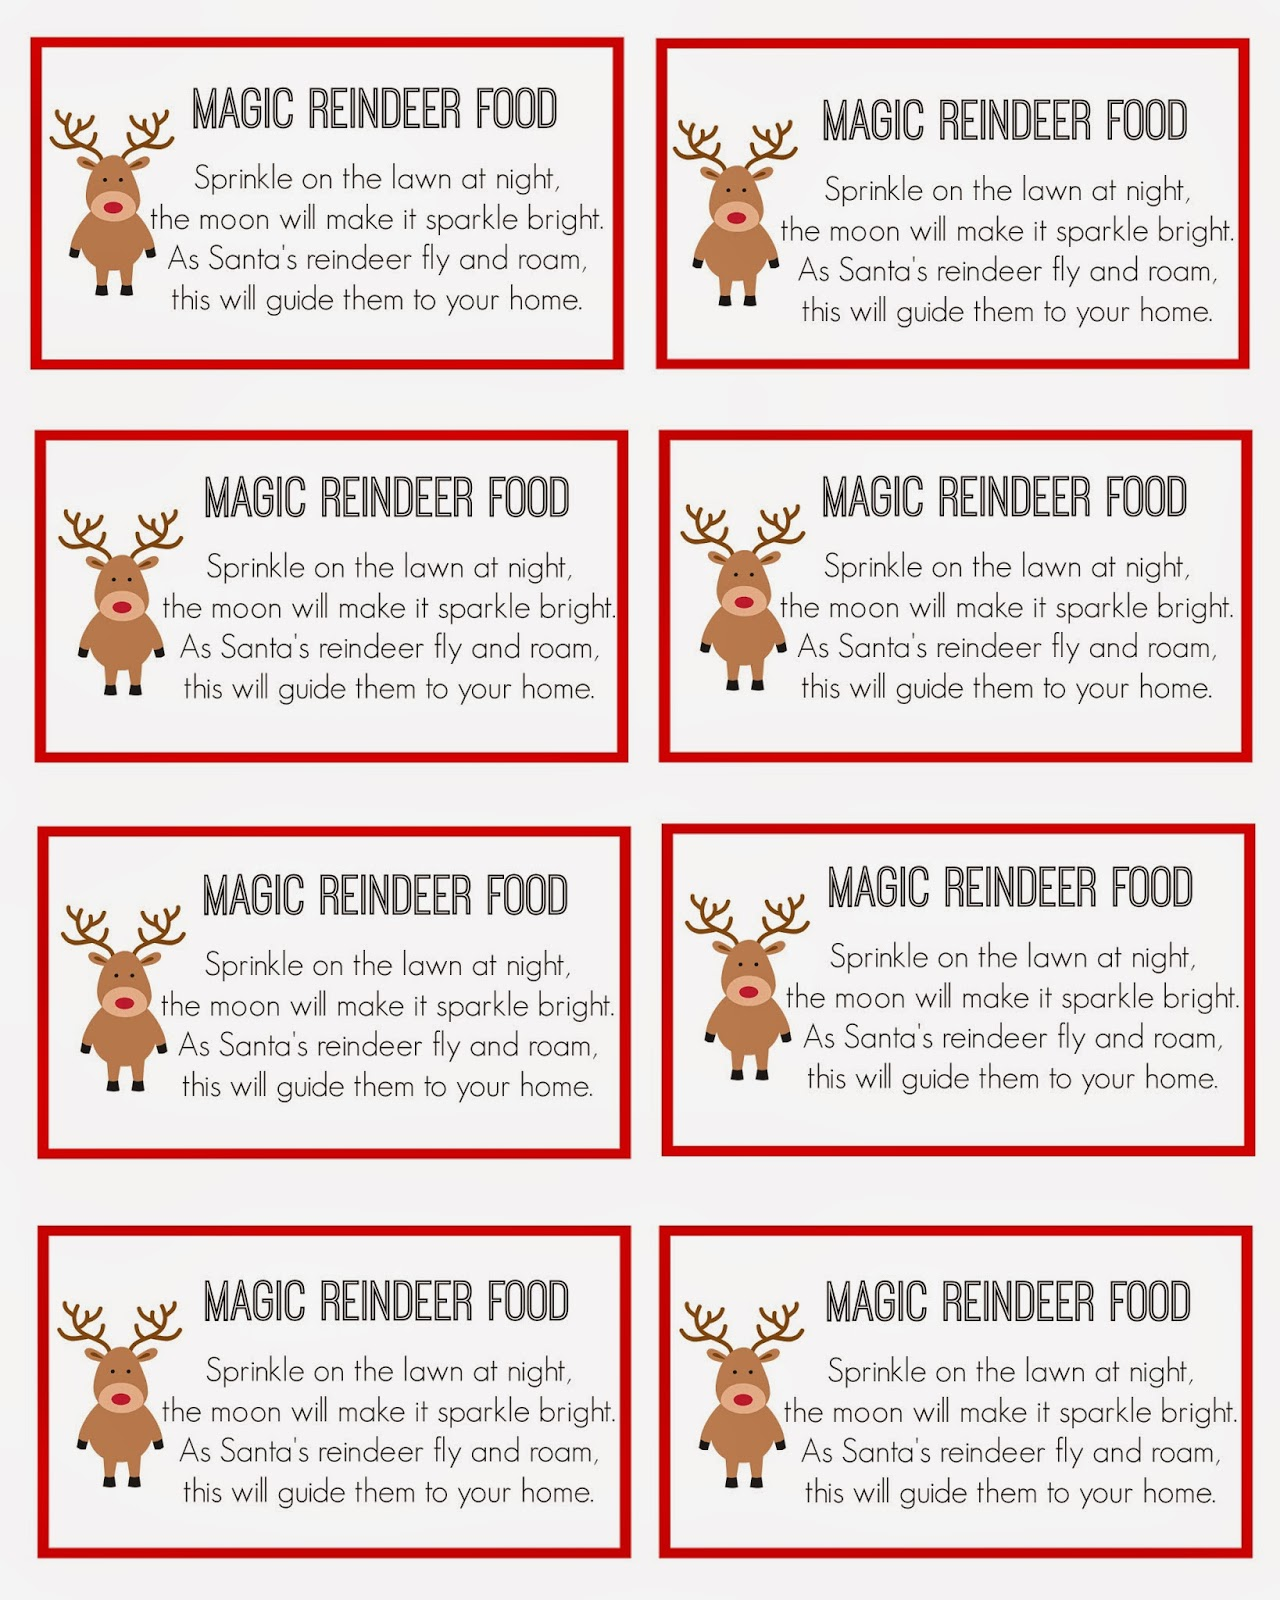 ... Reindeer Food Labels, Reindeer Food Poem Printable and Magic Reindeer